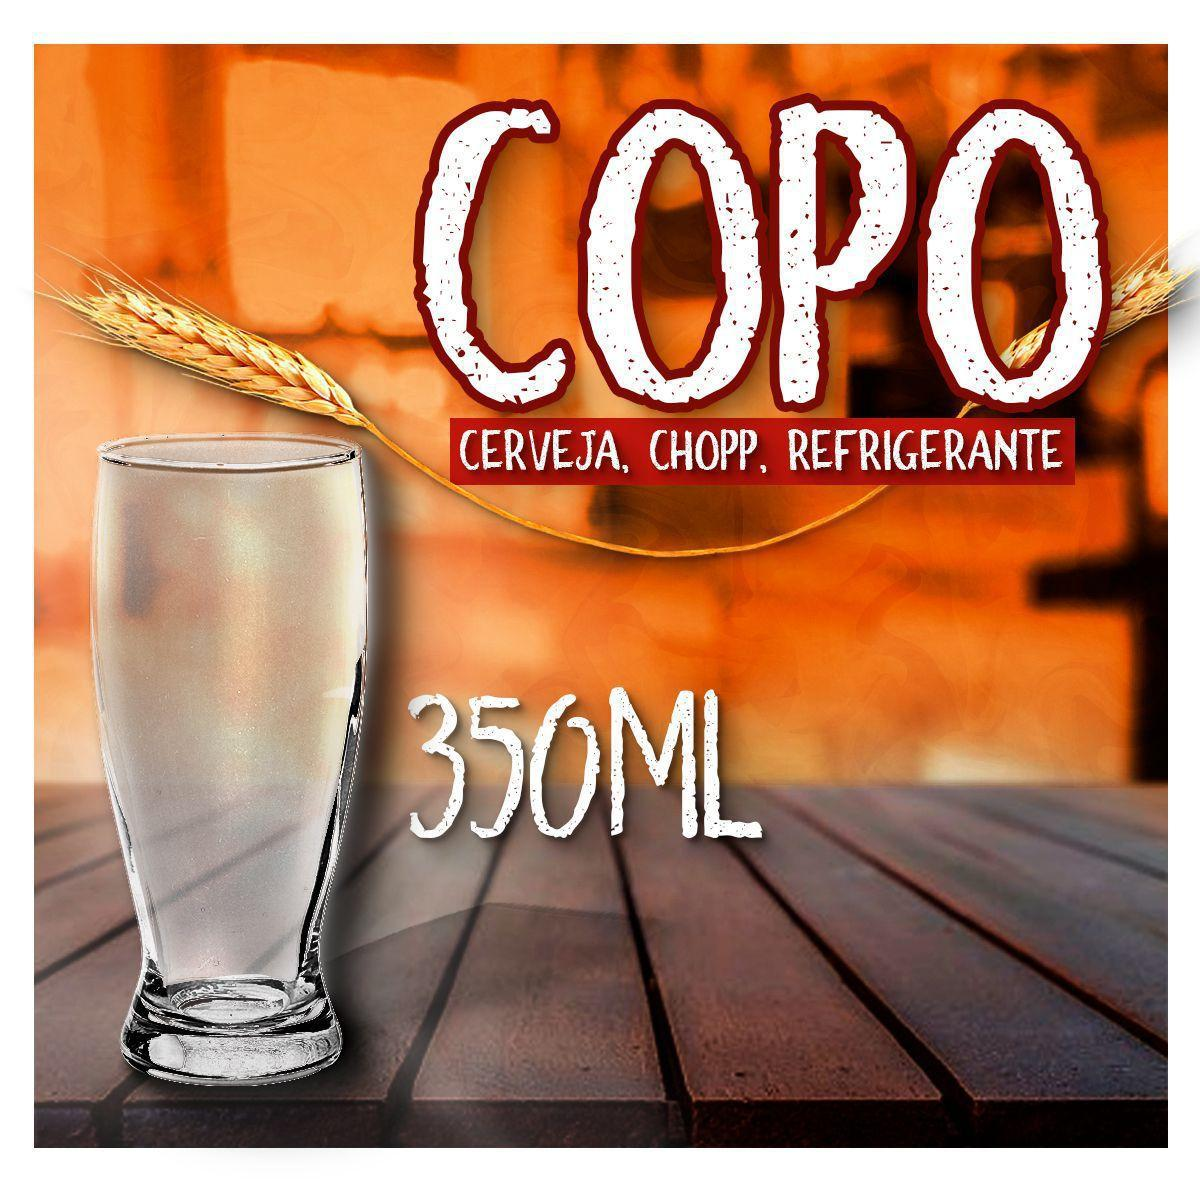 Copo chopp transparente - 350ml